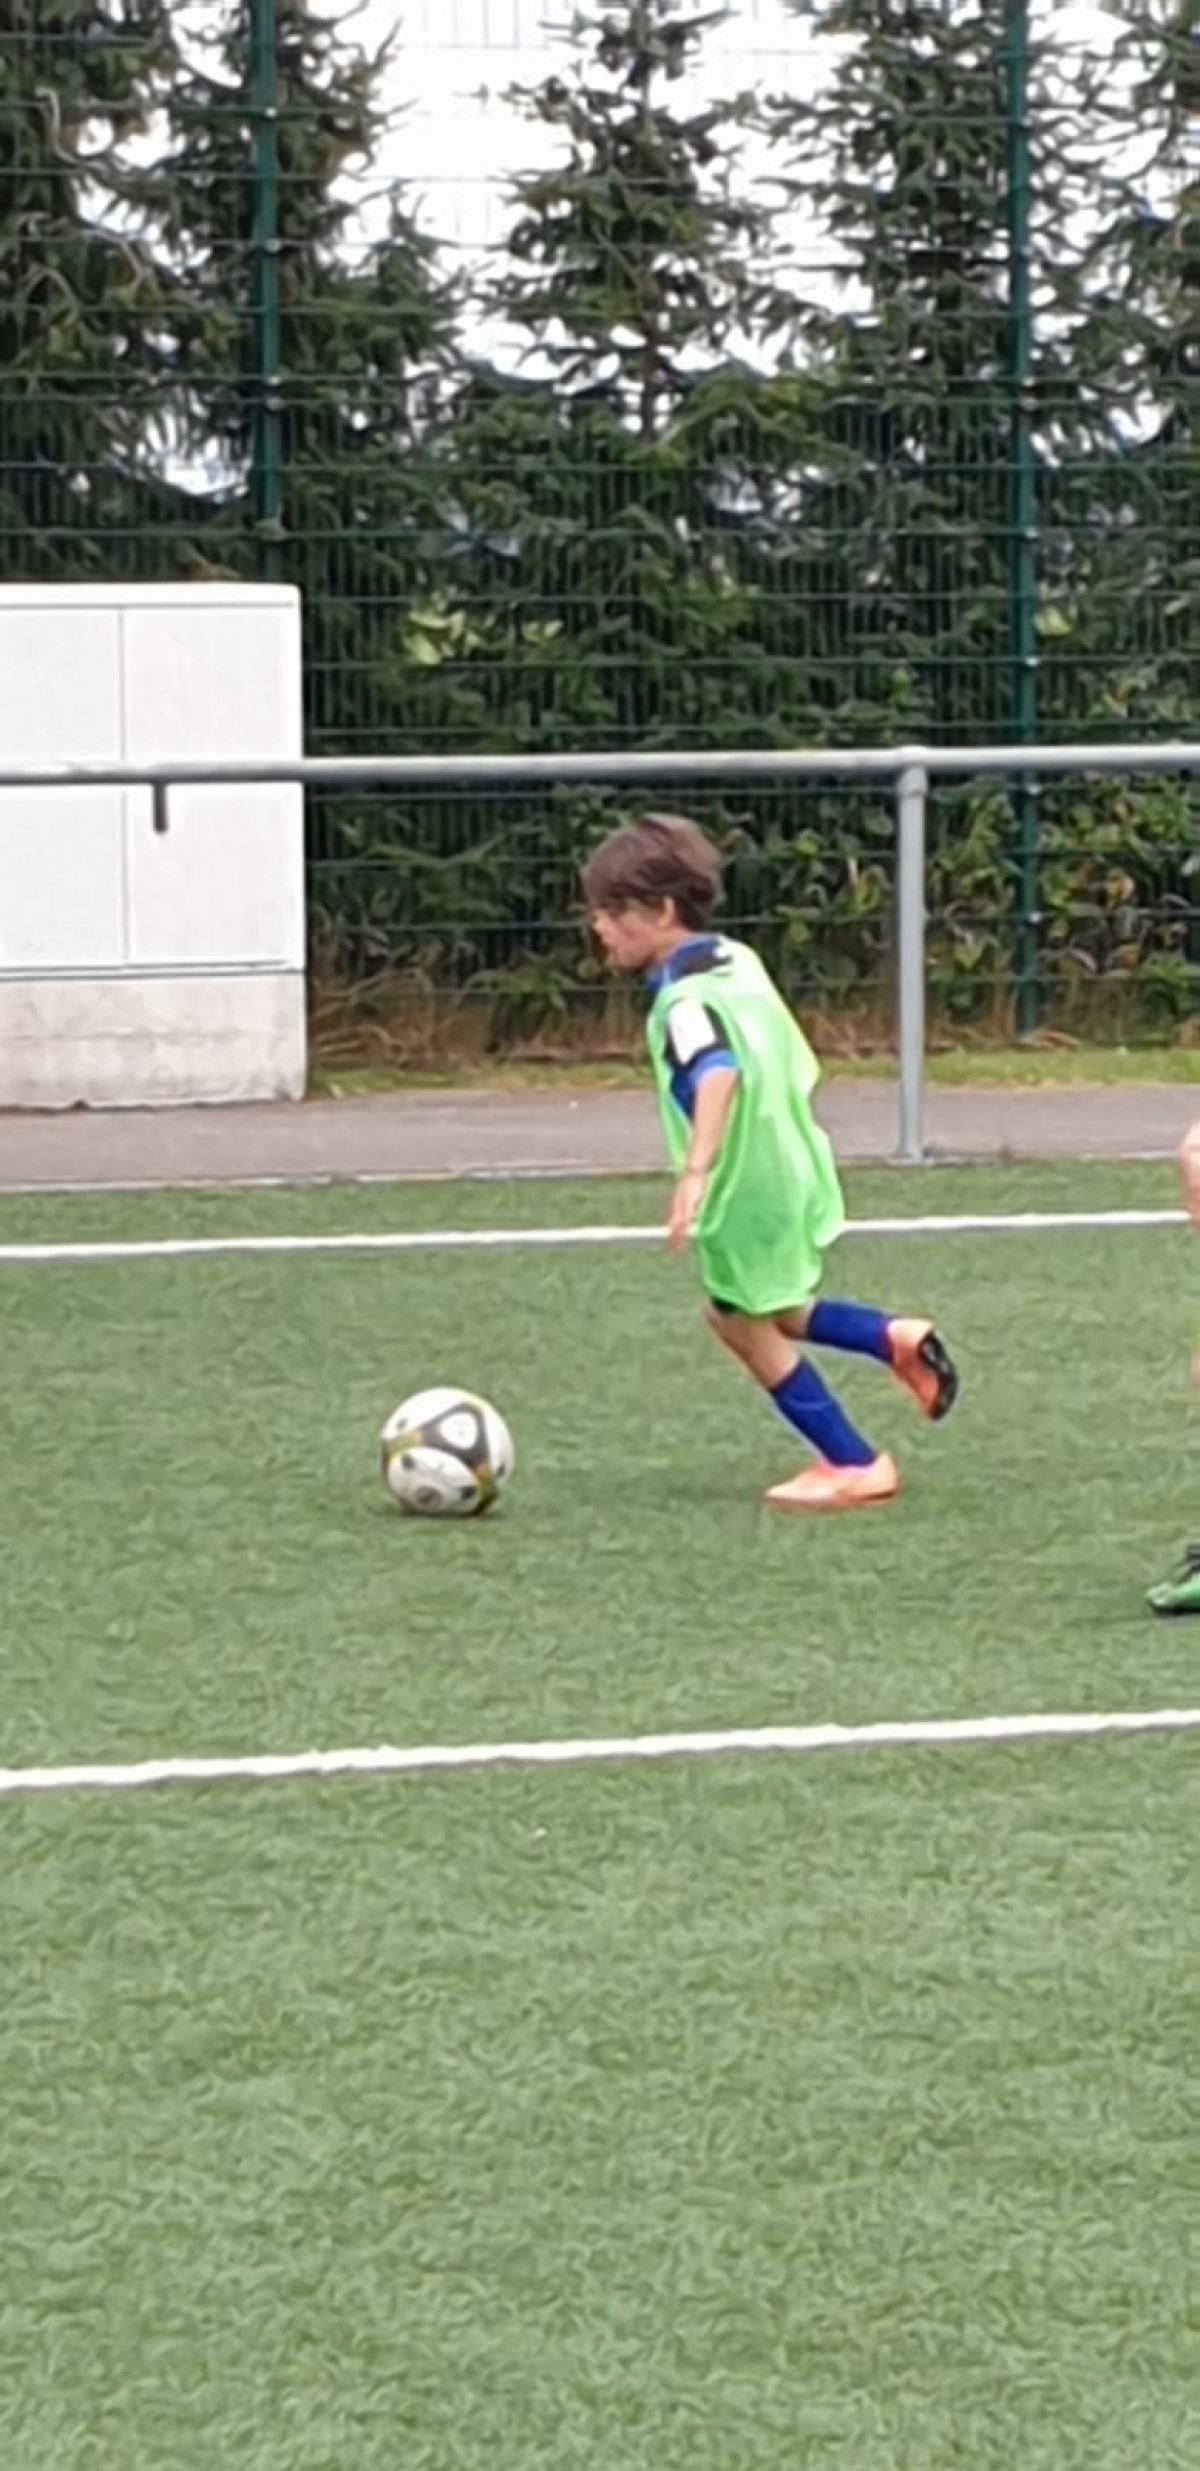 Goals and More Fußballcamp zu Reiler 2020